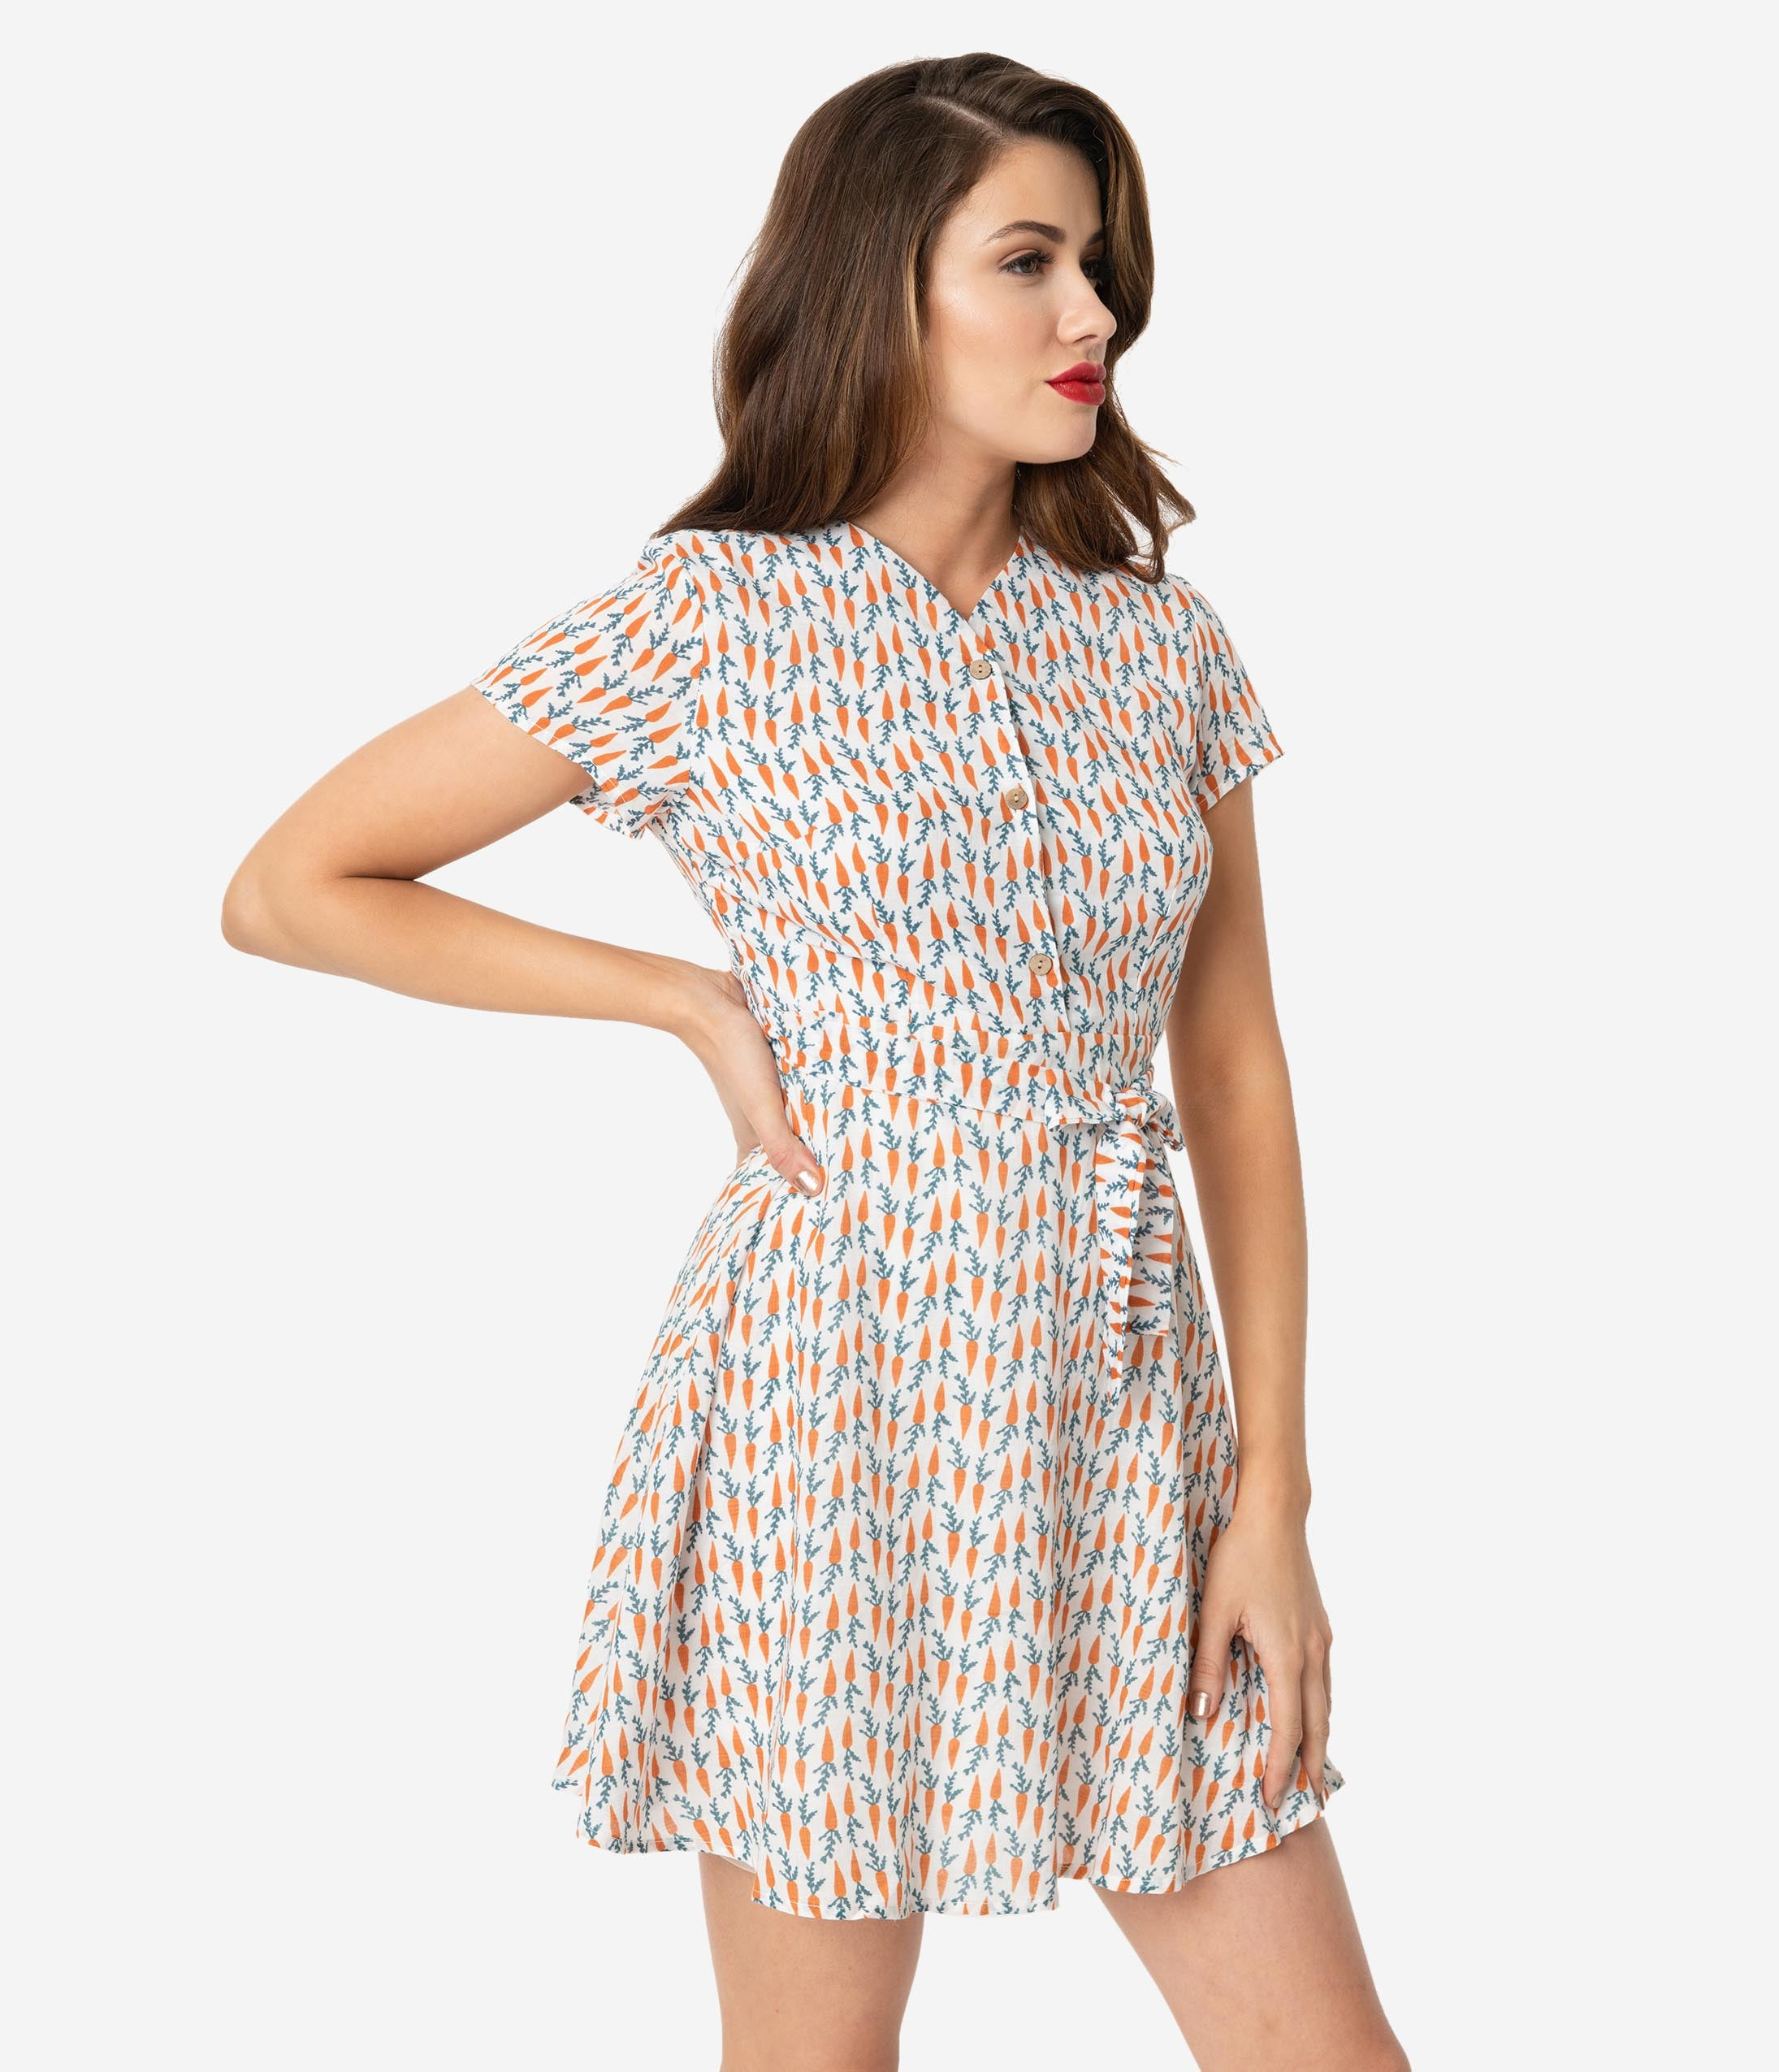 Modest General Print Above the Knee Short Sleeves Sleeves High-Neck Fit-and-Flare Back Zipper Fitted Skater Dress With a Sash